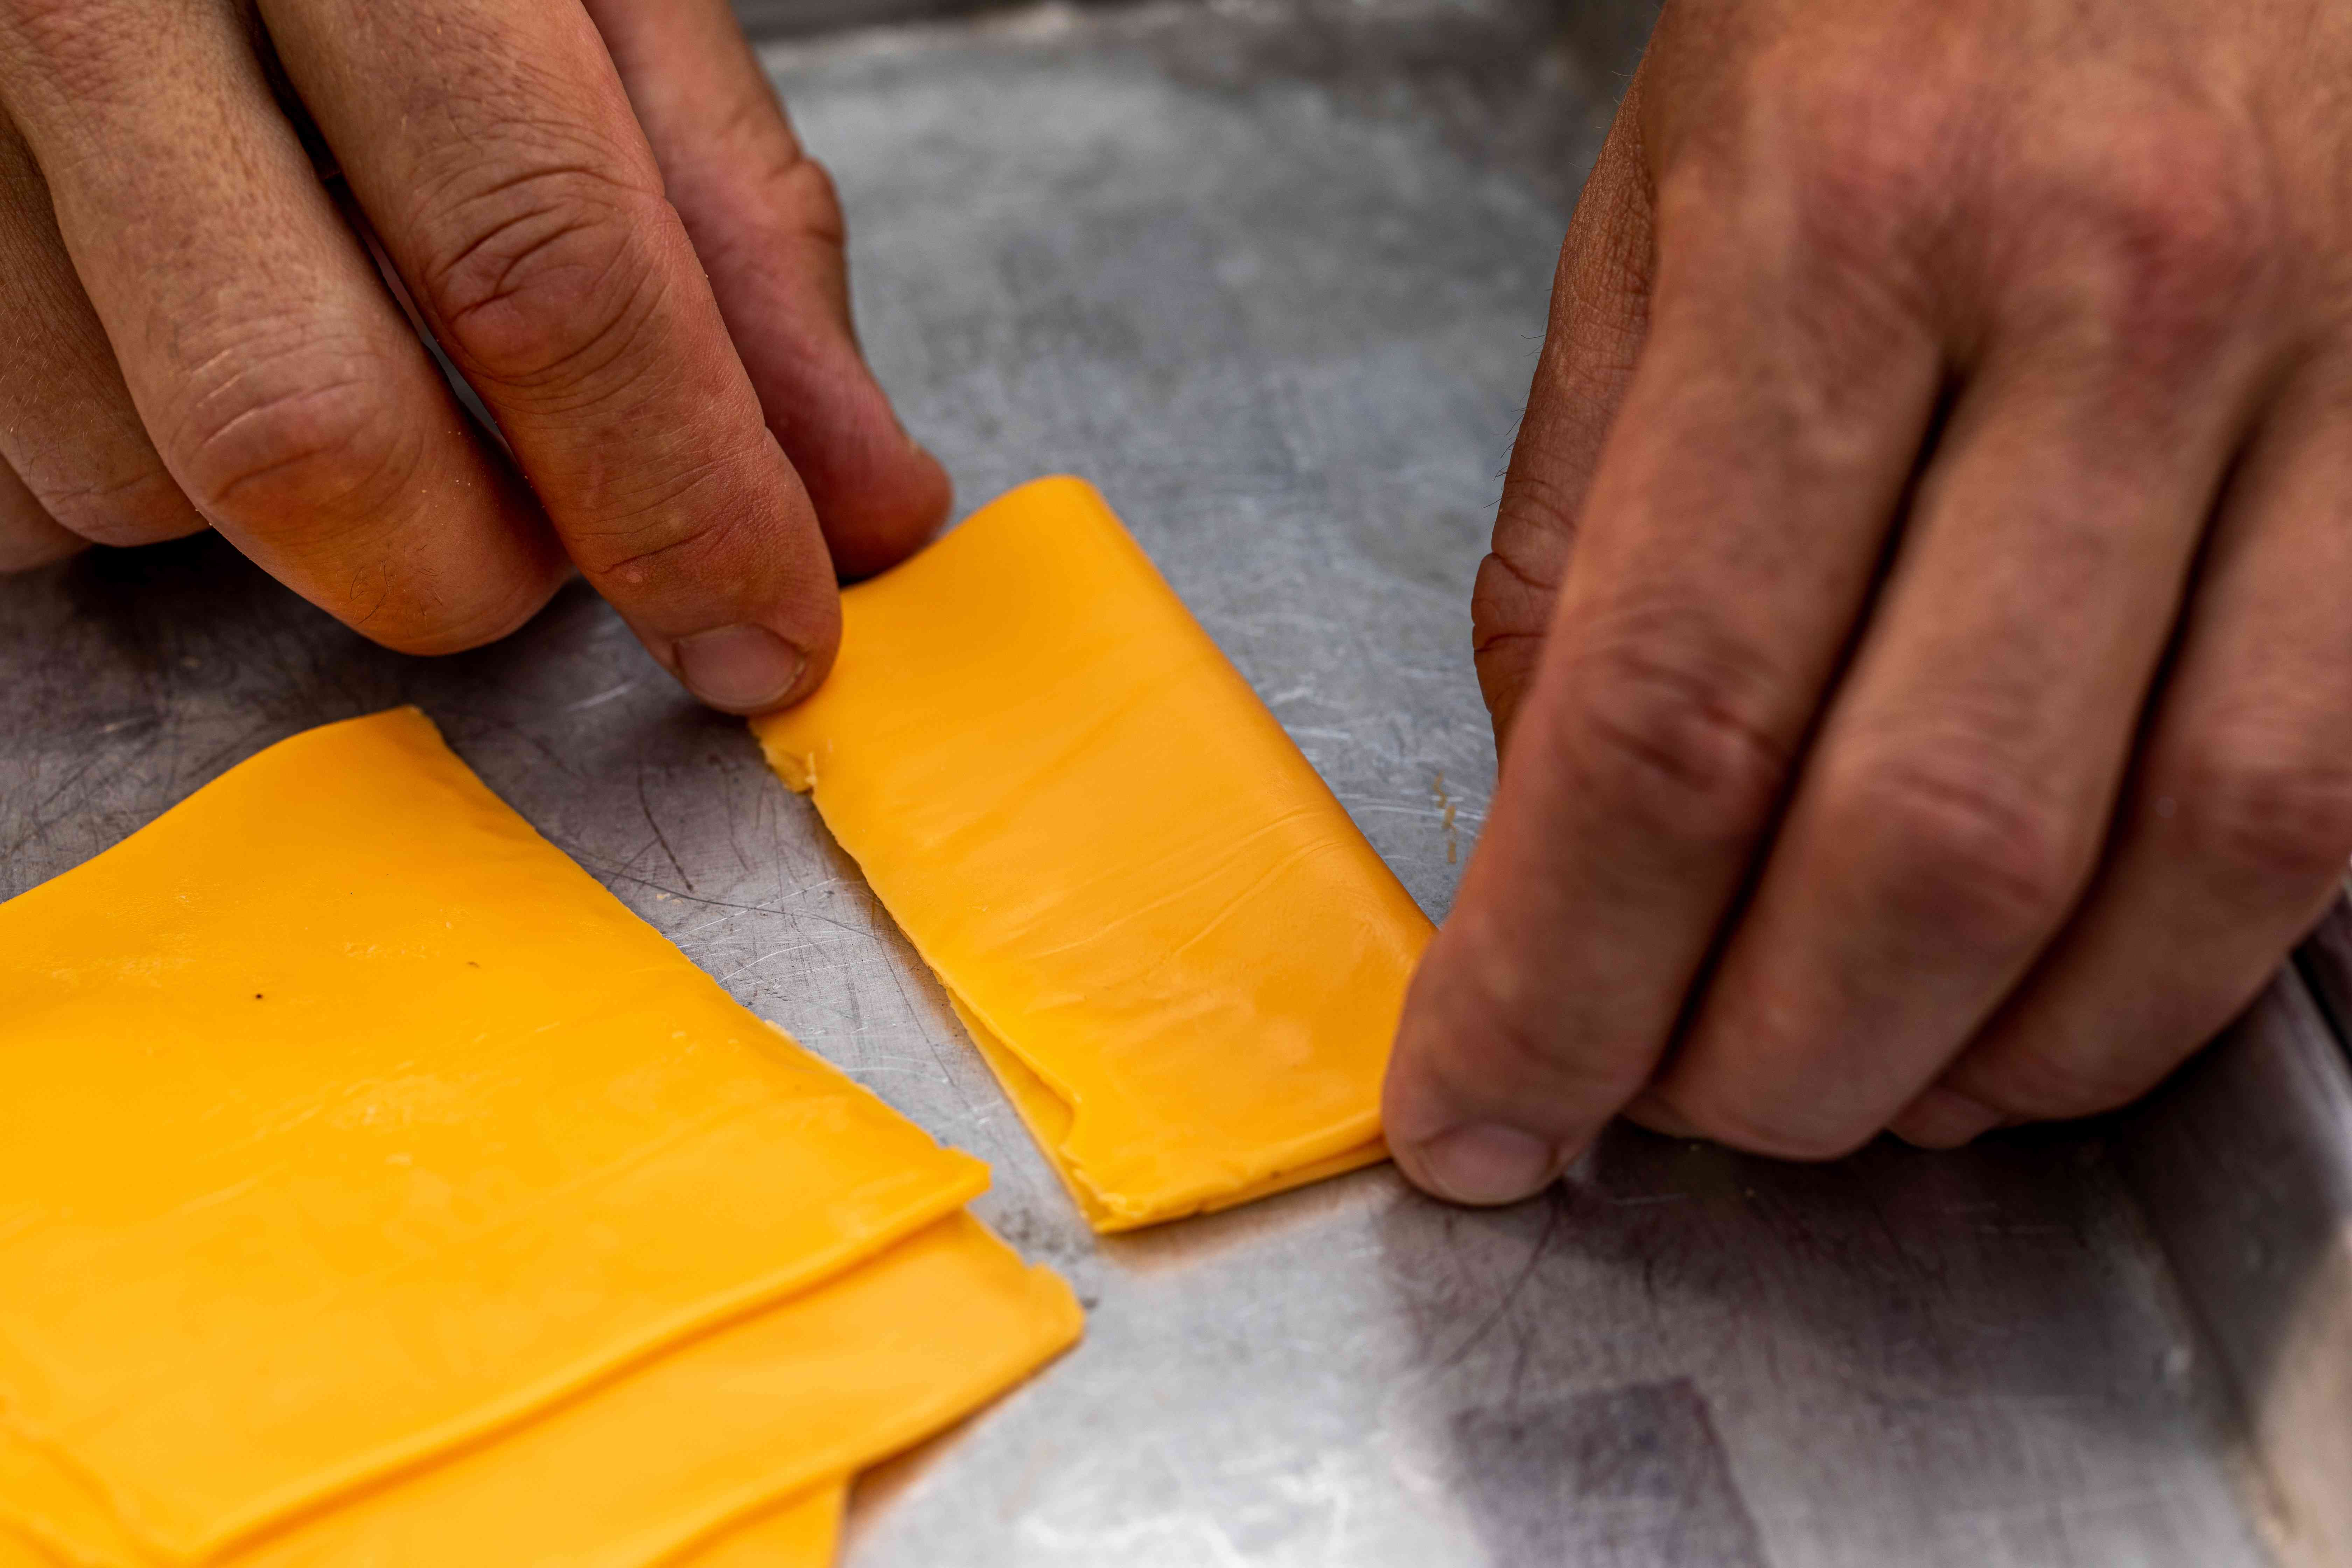 Folding sliced cheese in half to make a Juicy Lucy burger.